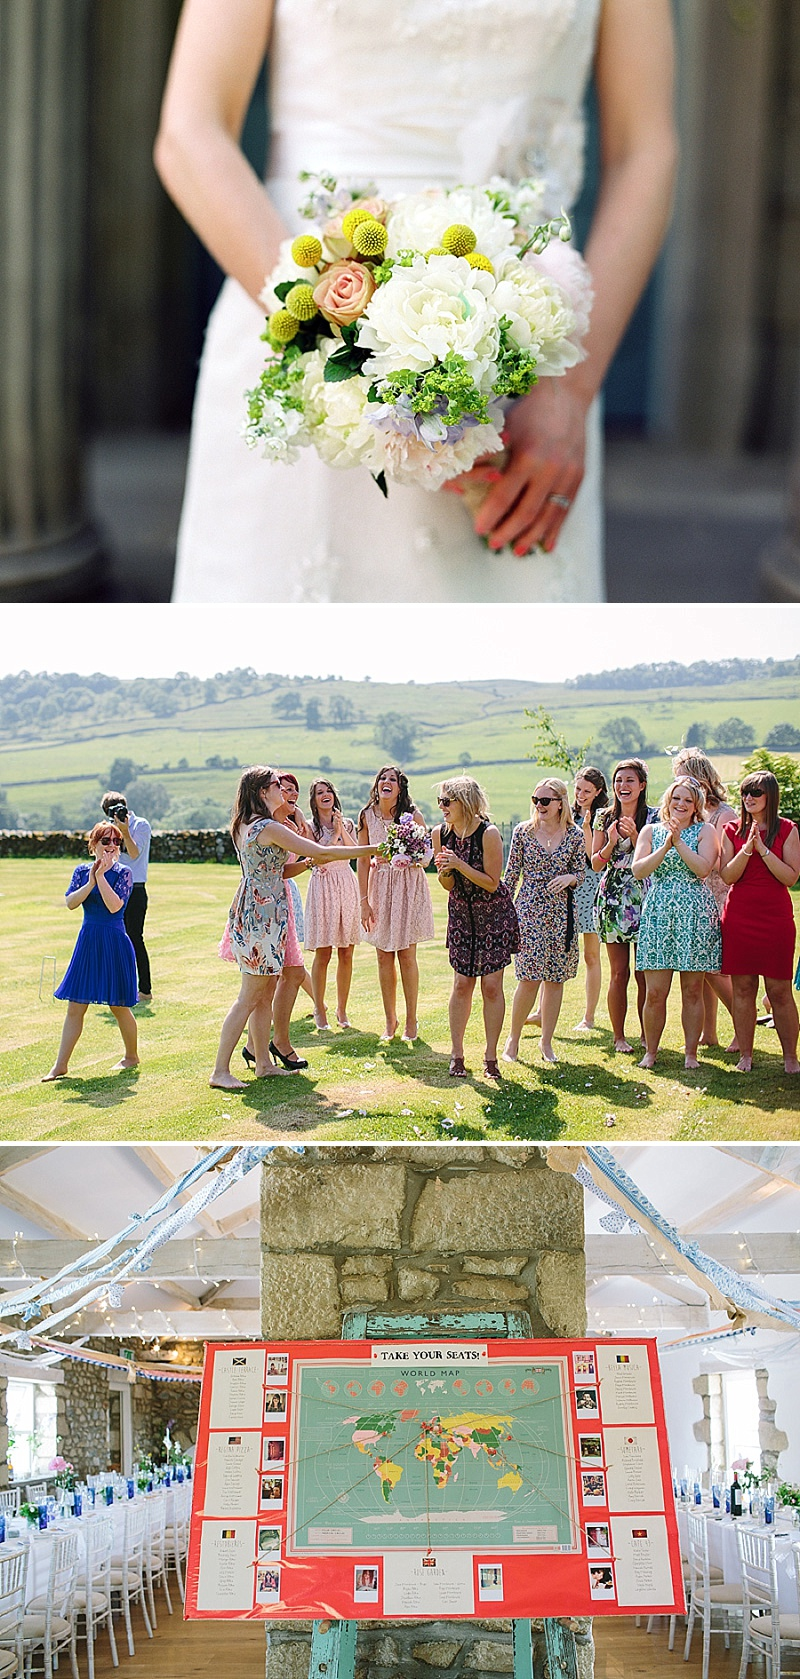 A Rustic barn wedding in Yorkshire felicia by Amanda Wyatt dress_0017